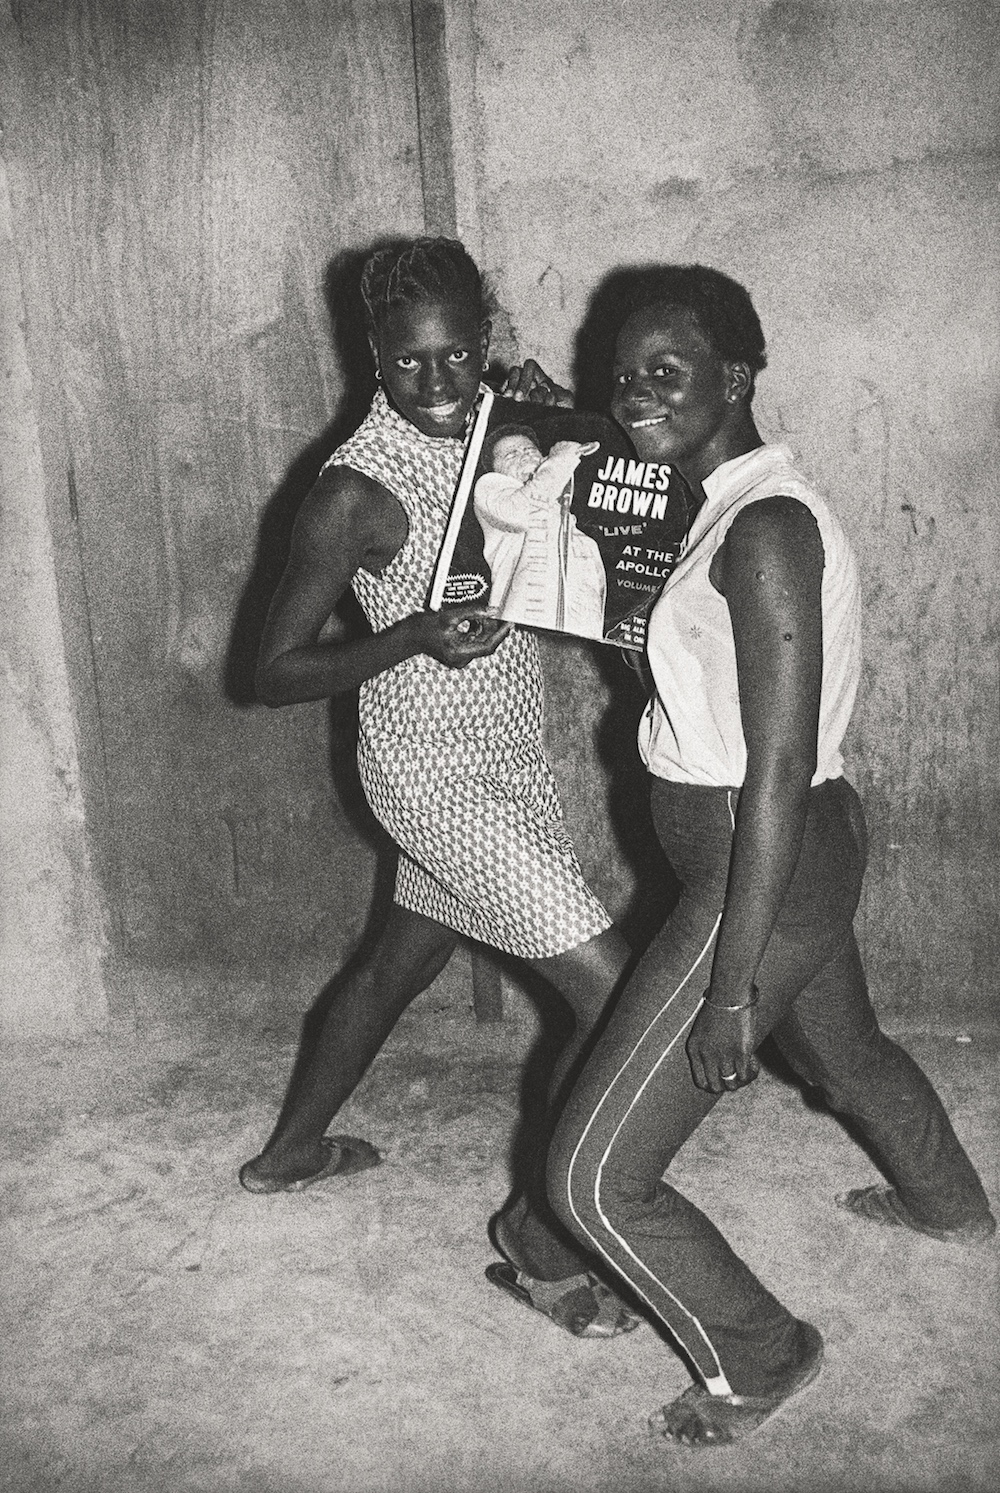 Fans de James Brown, 1965. Collection Fondation Cartier pour l'art contemporain, Paris © Malick Sidibé Extract from Mali Twist (Éditions Xavier Barral, Fondation Cartier pour l'art contemporain, 2017)